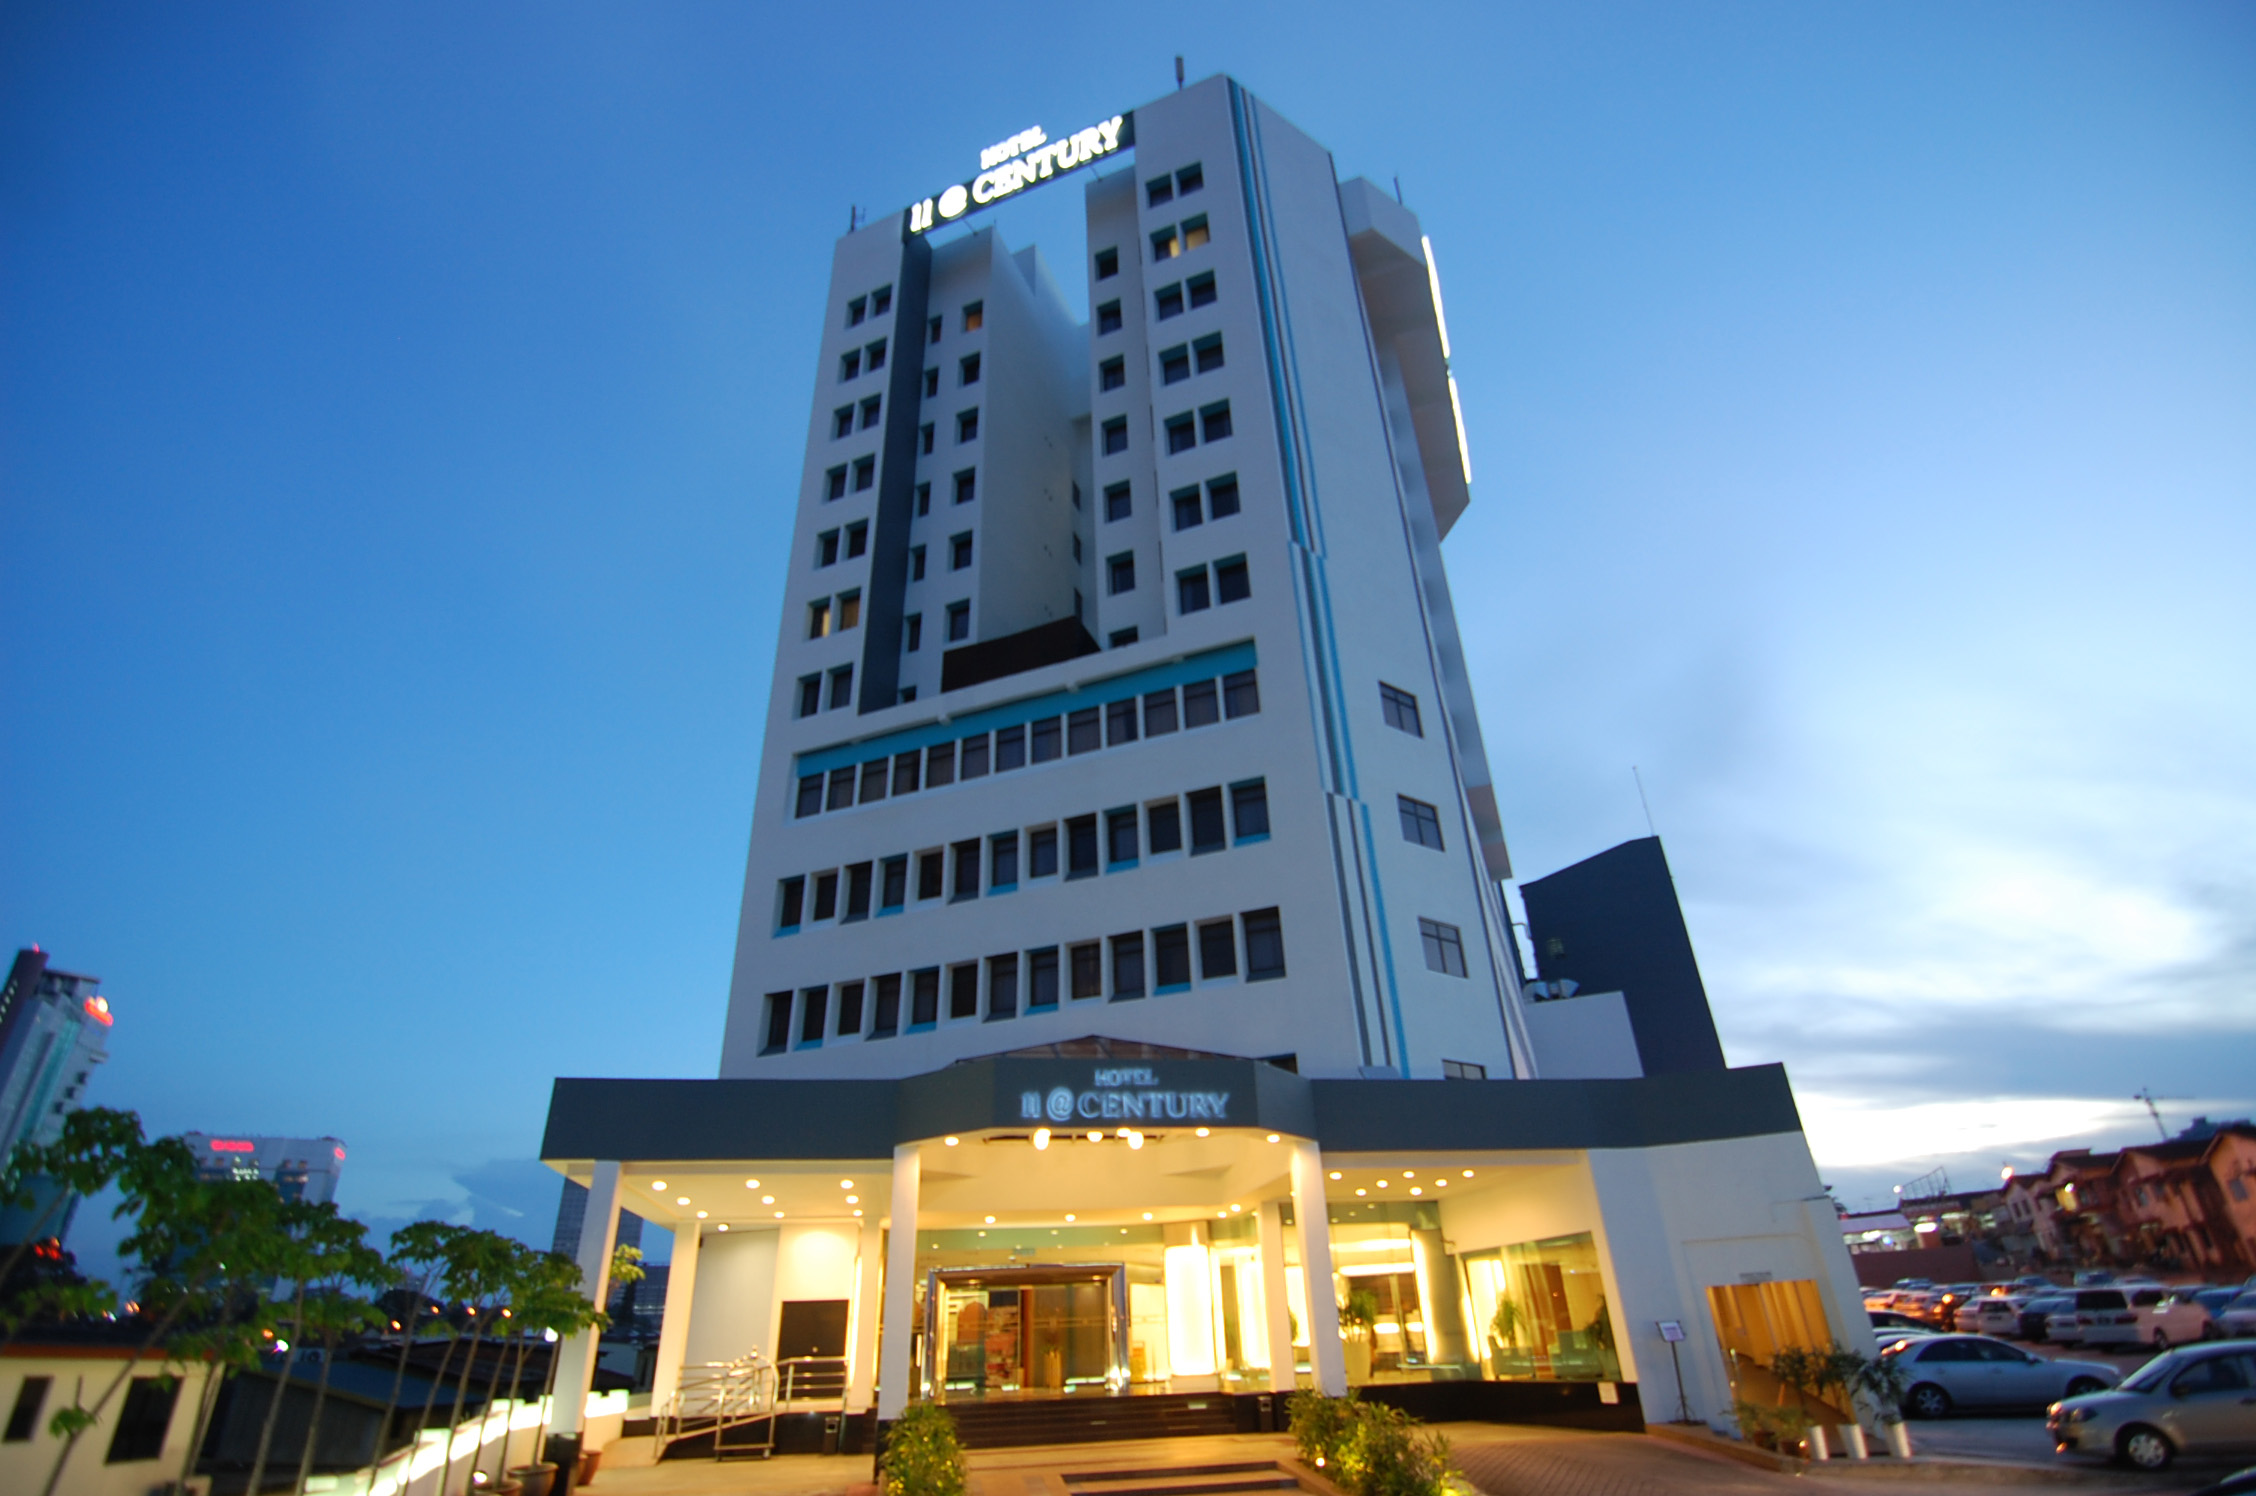 Rooms: Booking Taxi From Singapore To 11@Century Hotel, Johor Bahru